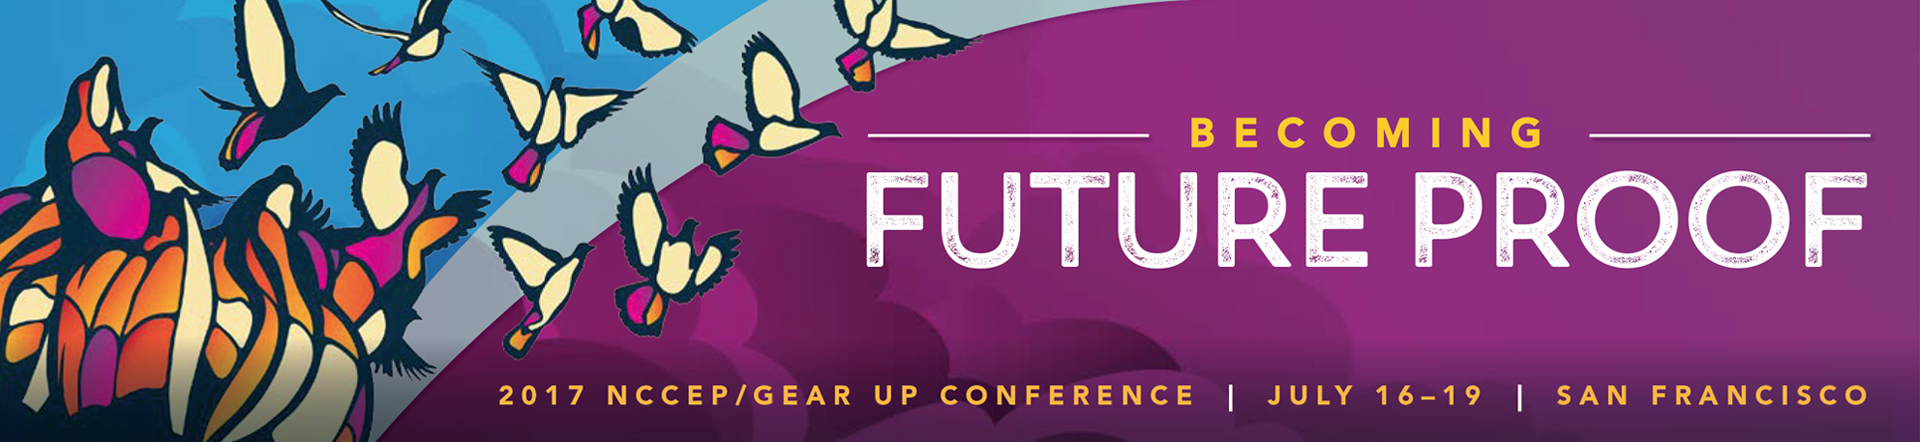 2017 NCCEP/GEAR UP Annual Conference - Becoming Future Proof